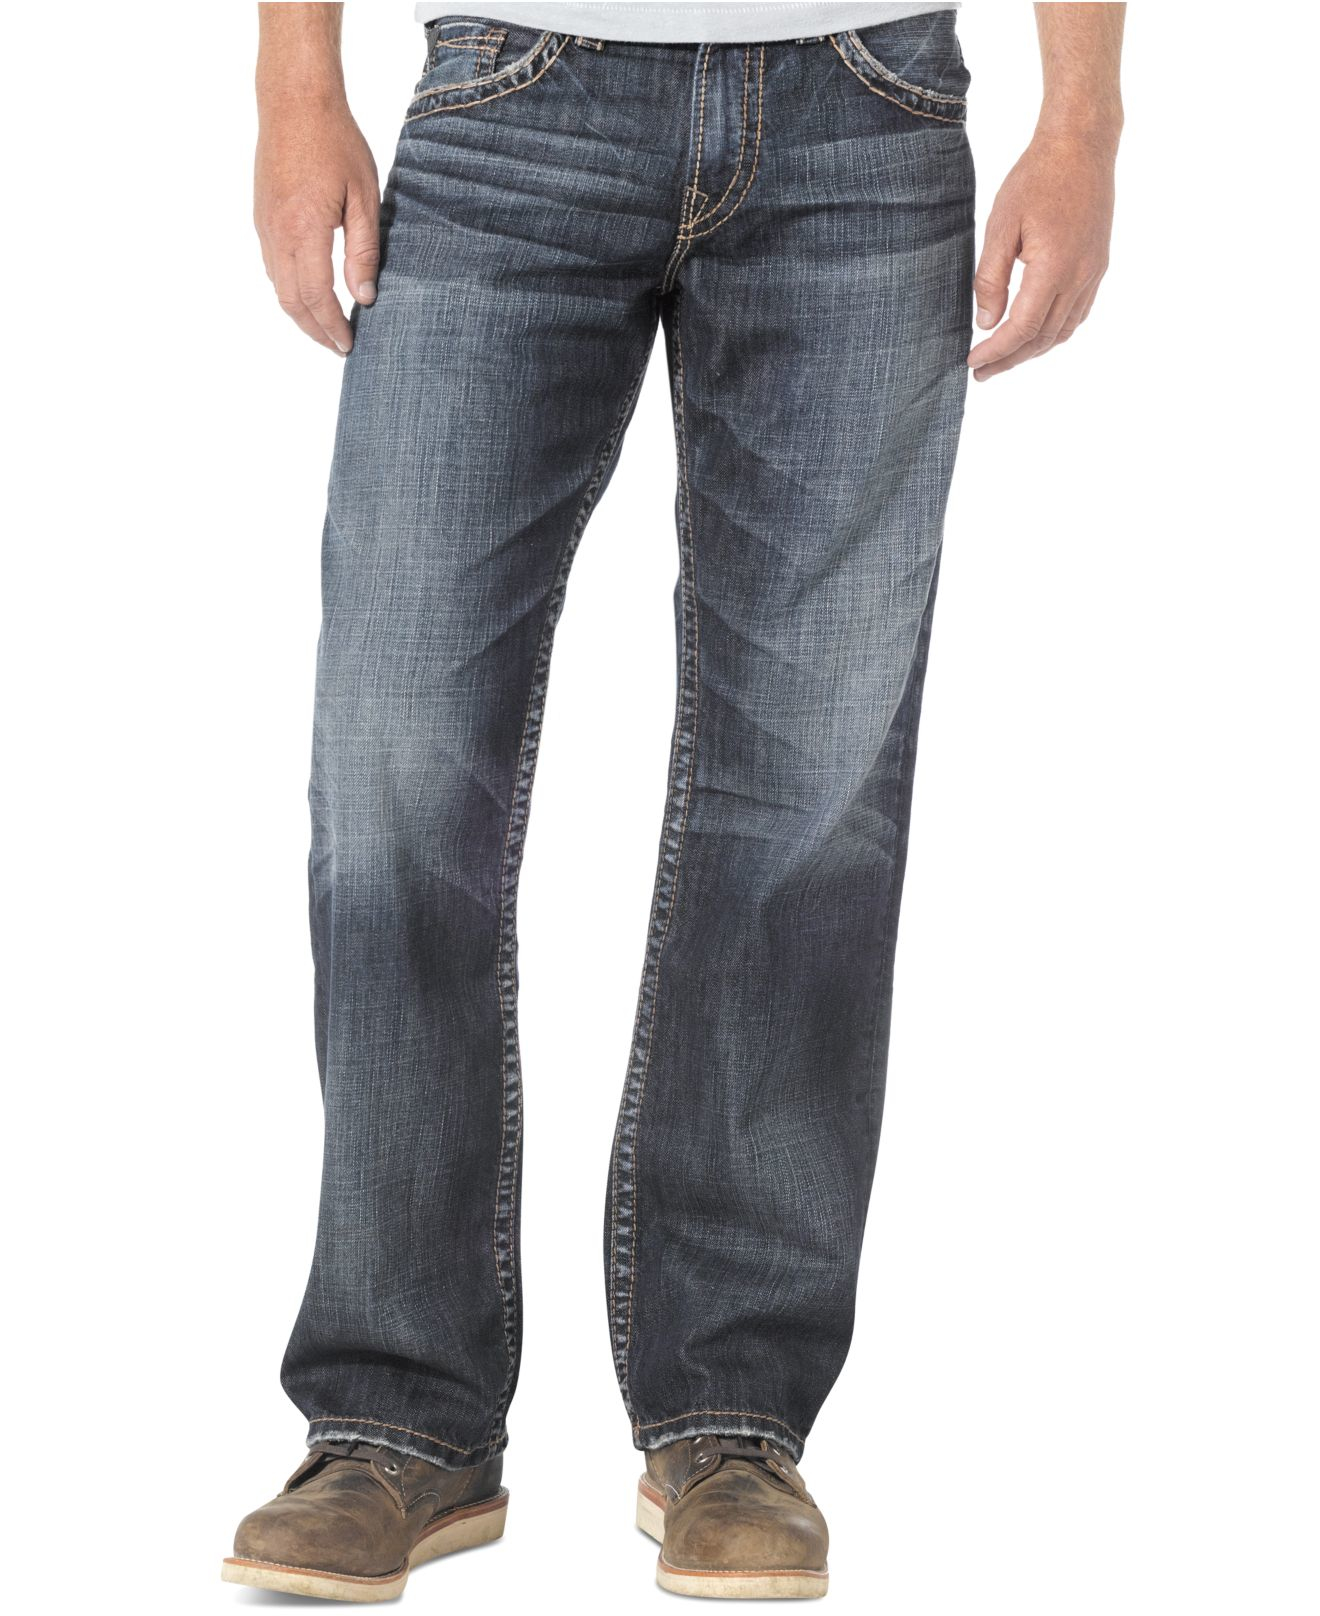 lyst silver jeans co loose fit straight leg gordie jeans in blue for men. Black Bedroom Furniture Sets. Home Design Ideas